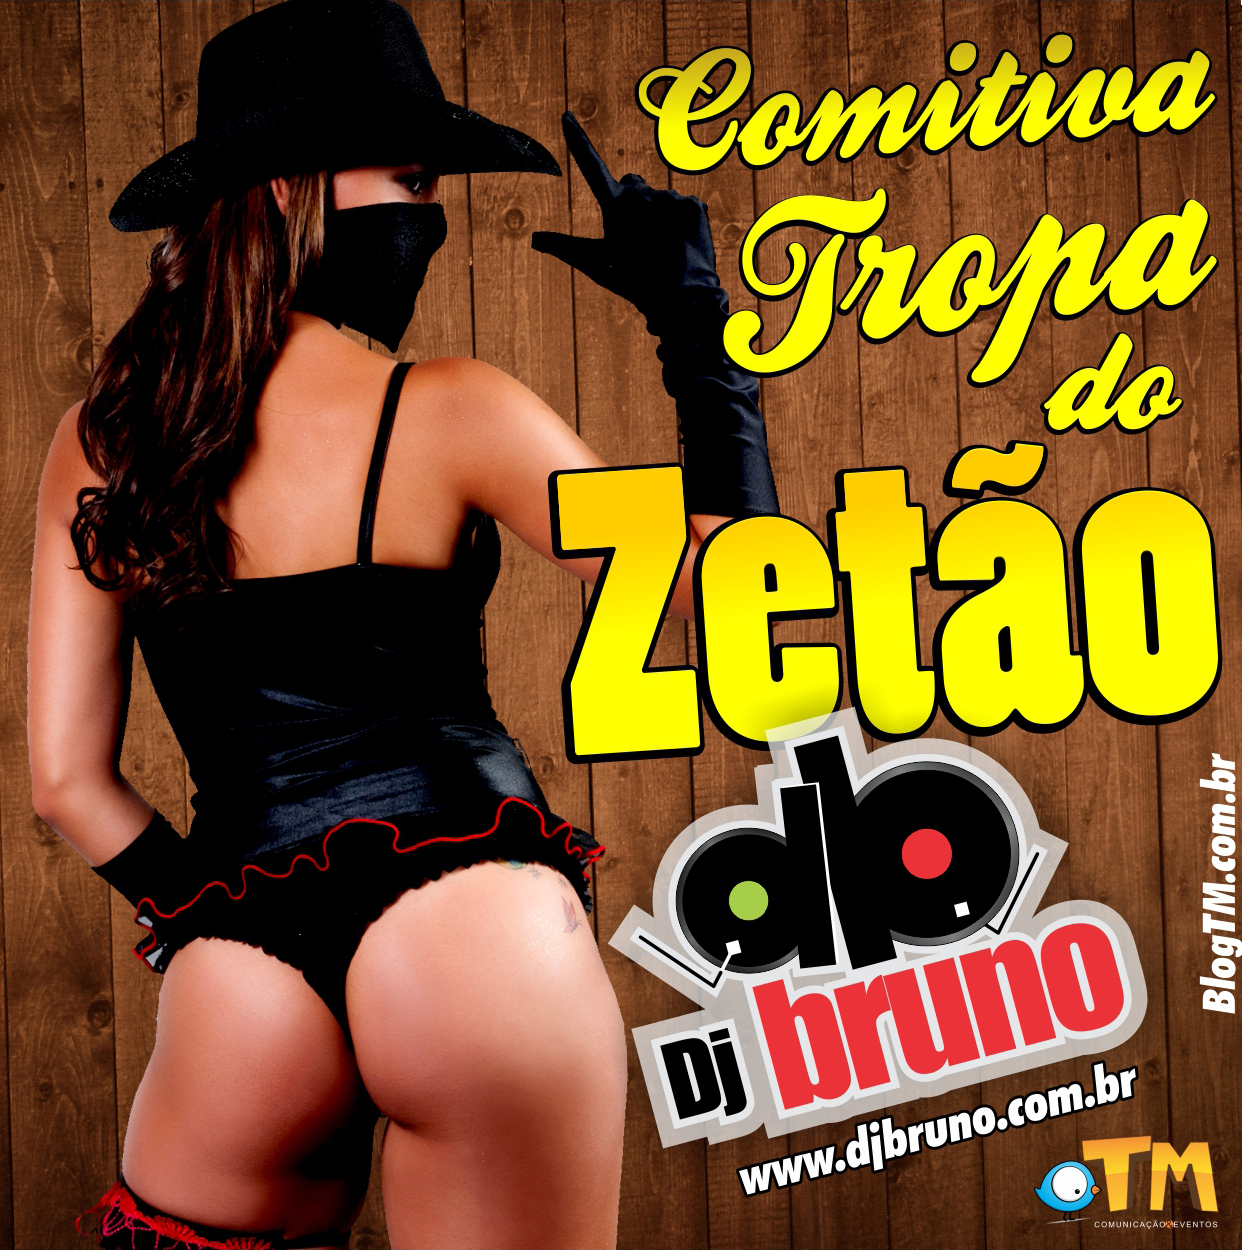 Baixar CD Comitiva+Tropa+do+Zet%C3%A3o Dj Bruno   Comitiva Tropa do Zeto Vol.02 (2013) Ouvir M&Atilde;&ordm;sicas Gr&Atilde;&iexcl;tis